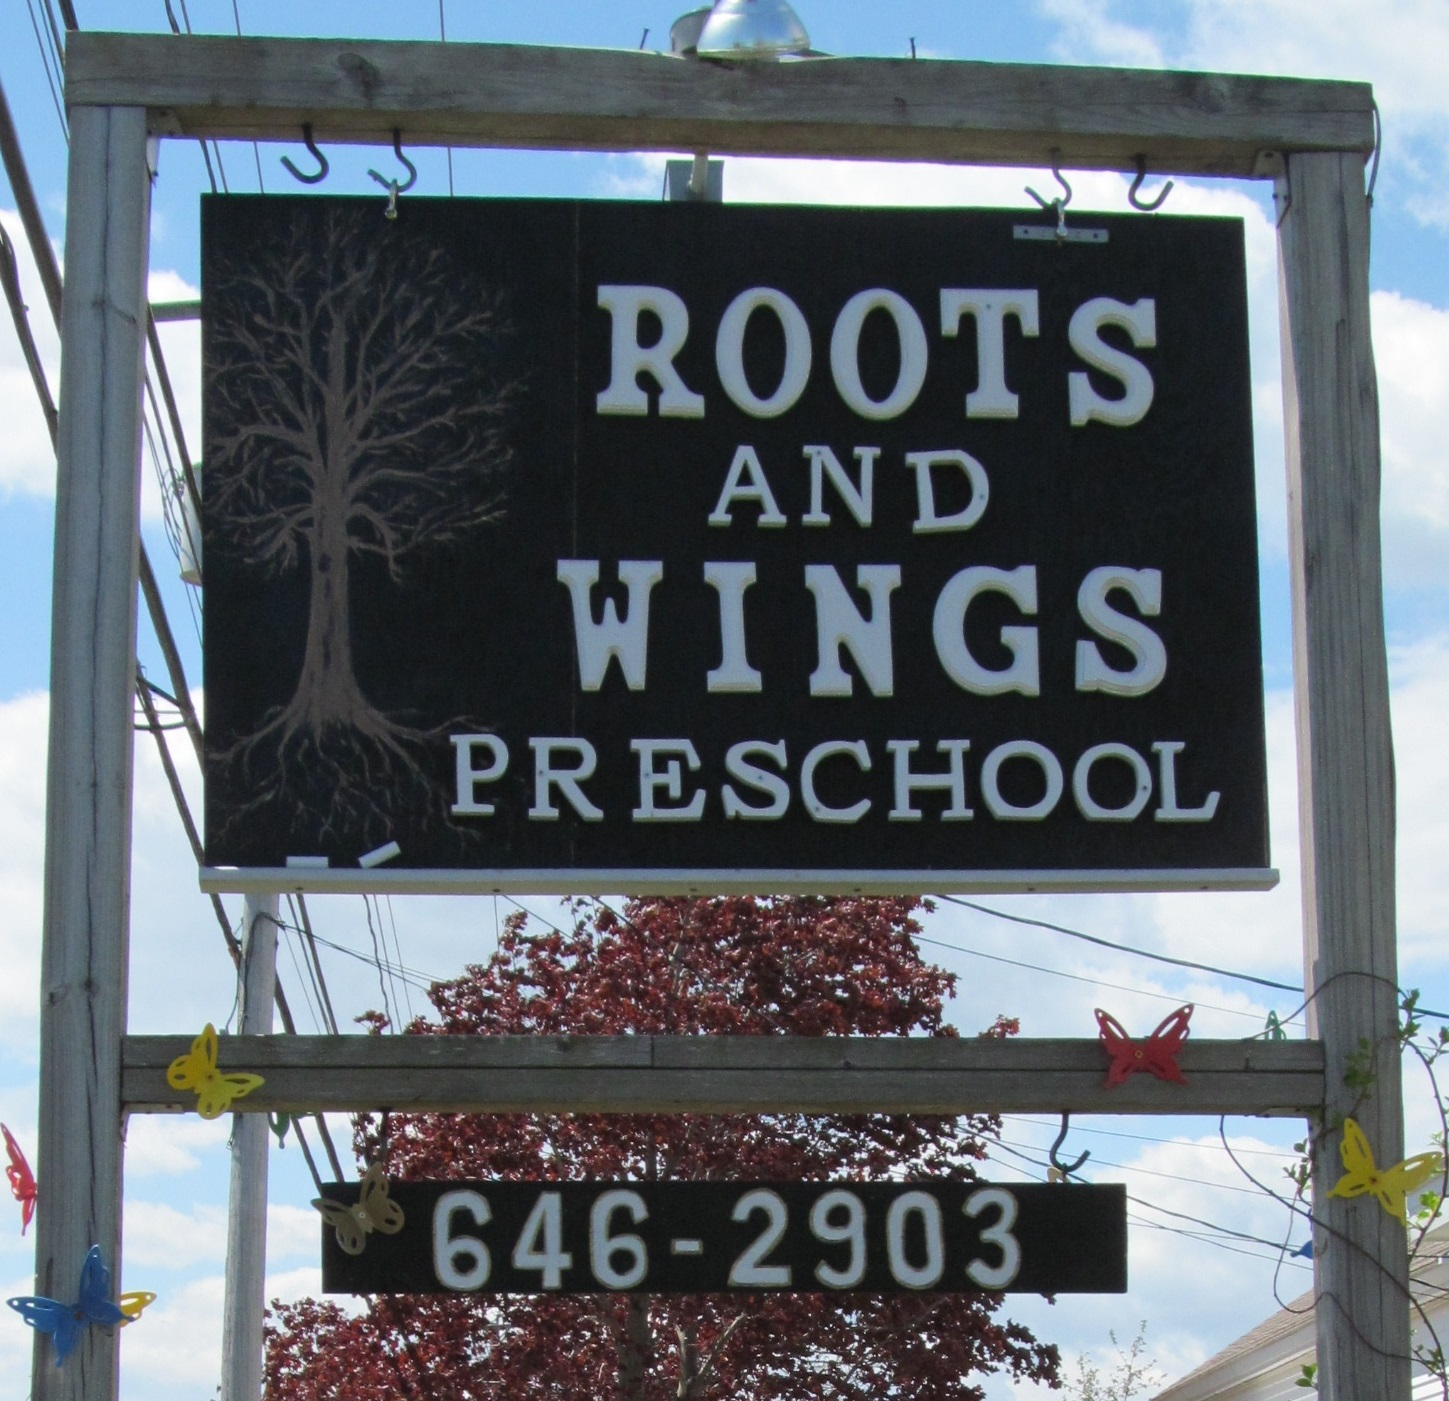 Roots and Wings Preschool